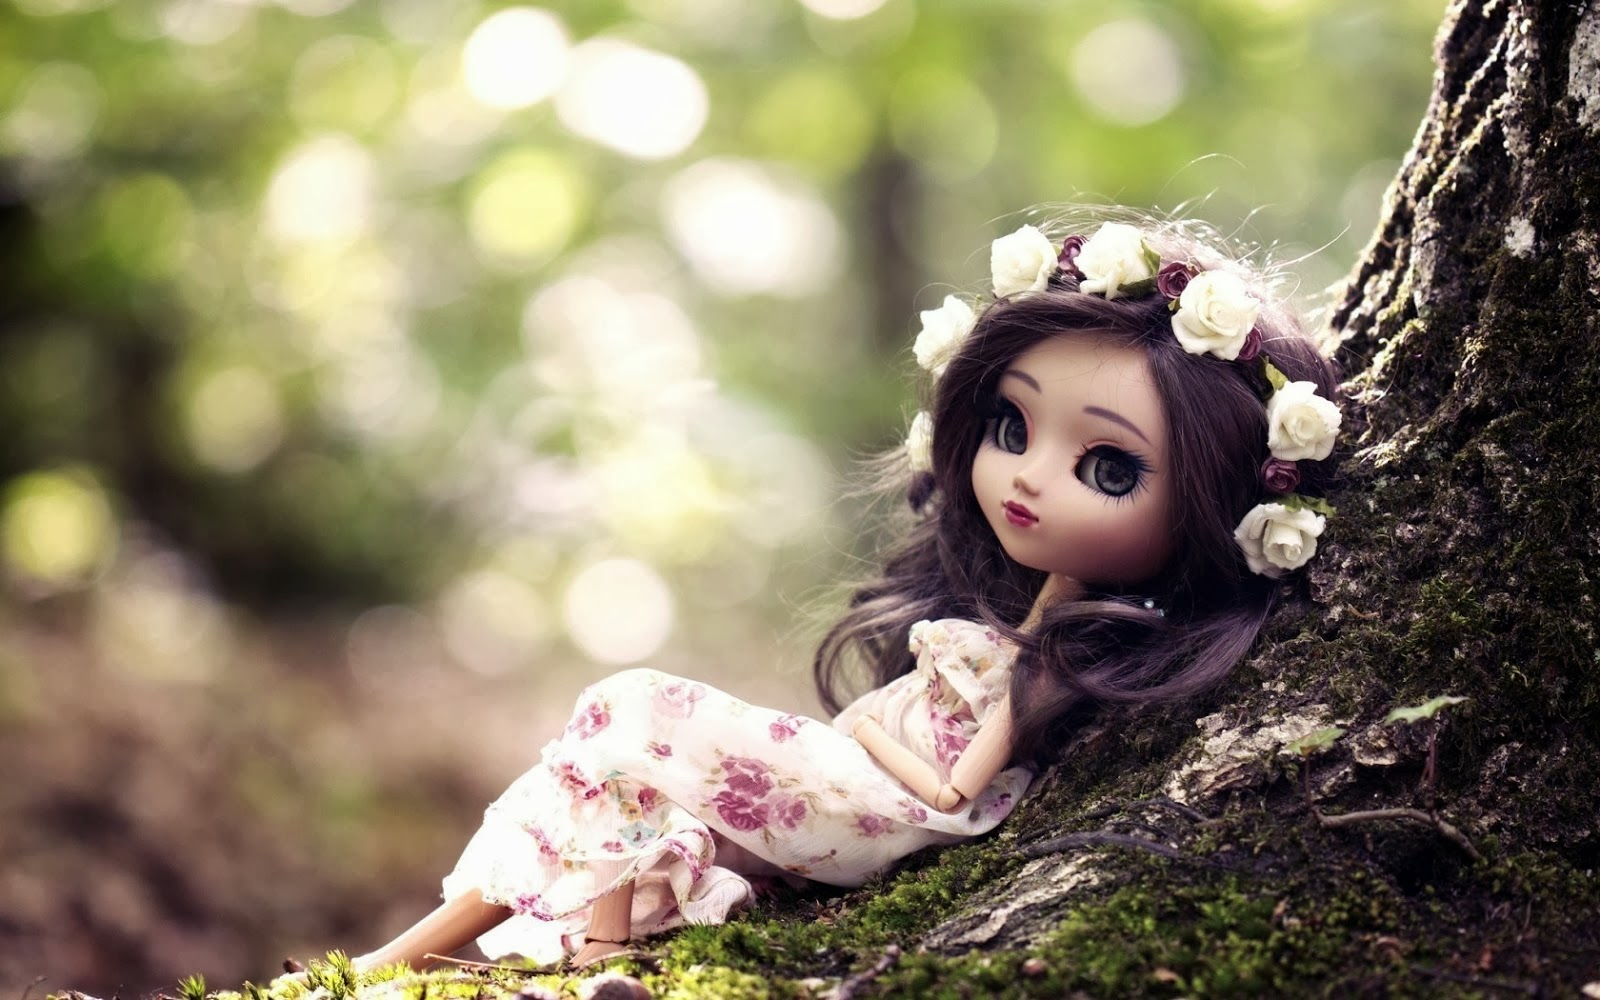 Best Wallpaper Mobile Doll - Cute-barbie-doll-wallpapers-for-mobile-PIC-MCH055367  Best Photo Reference_416452.jpg